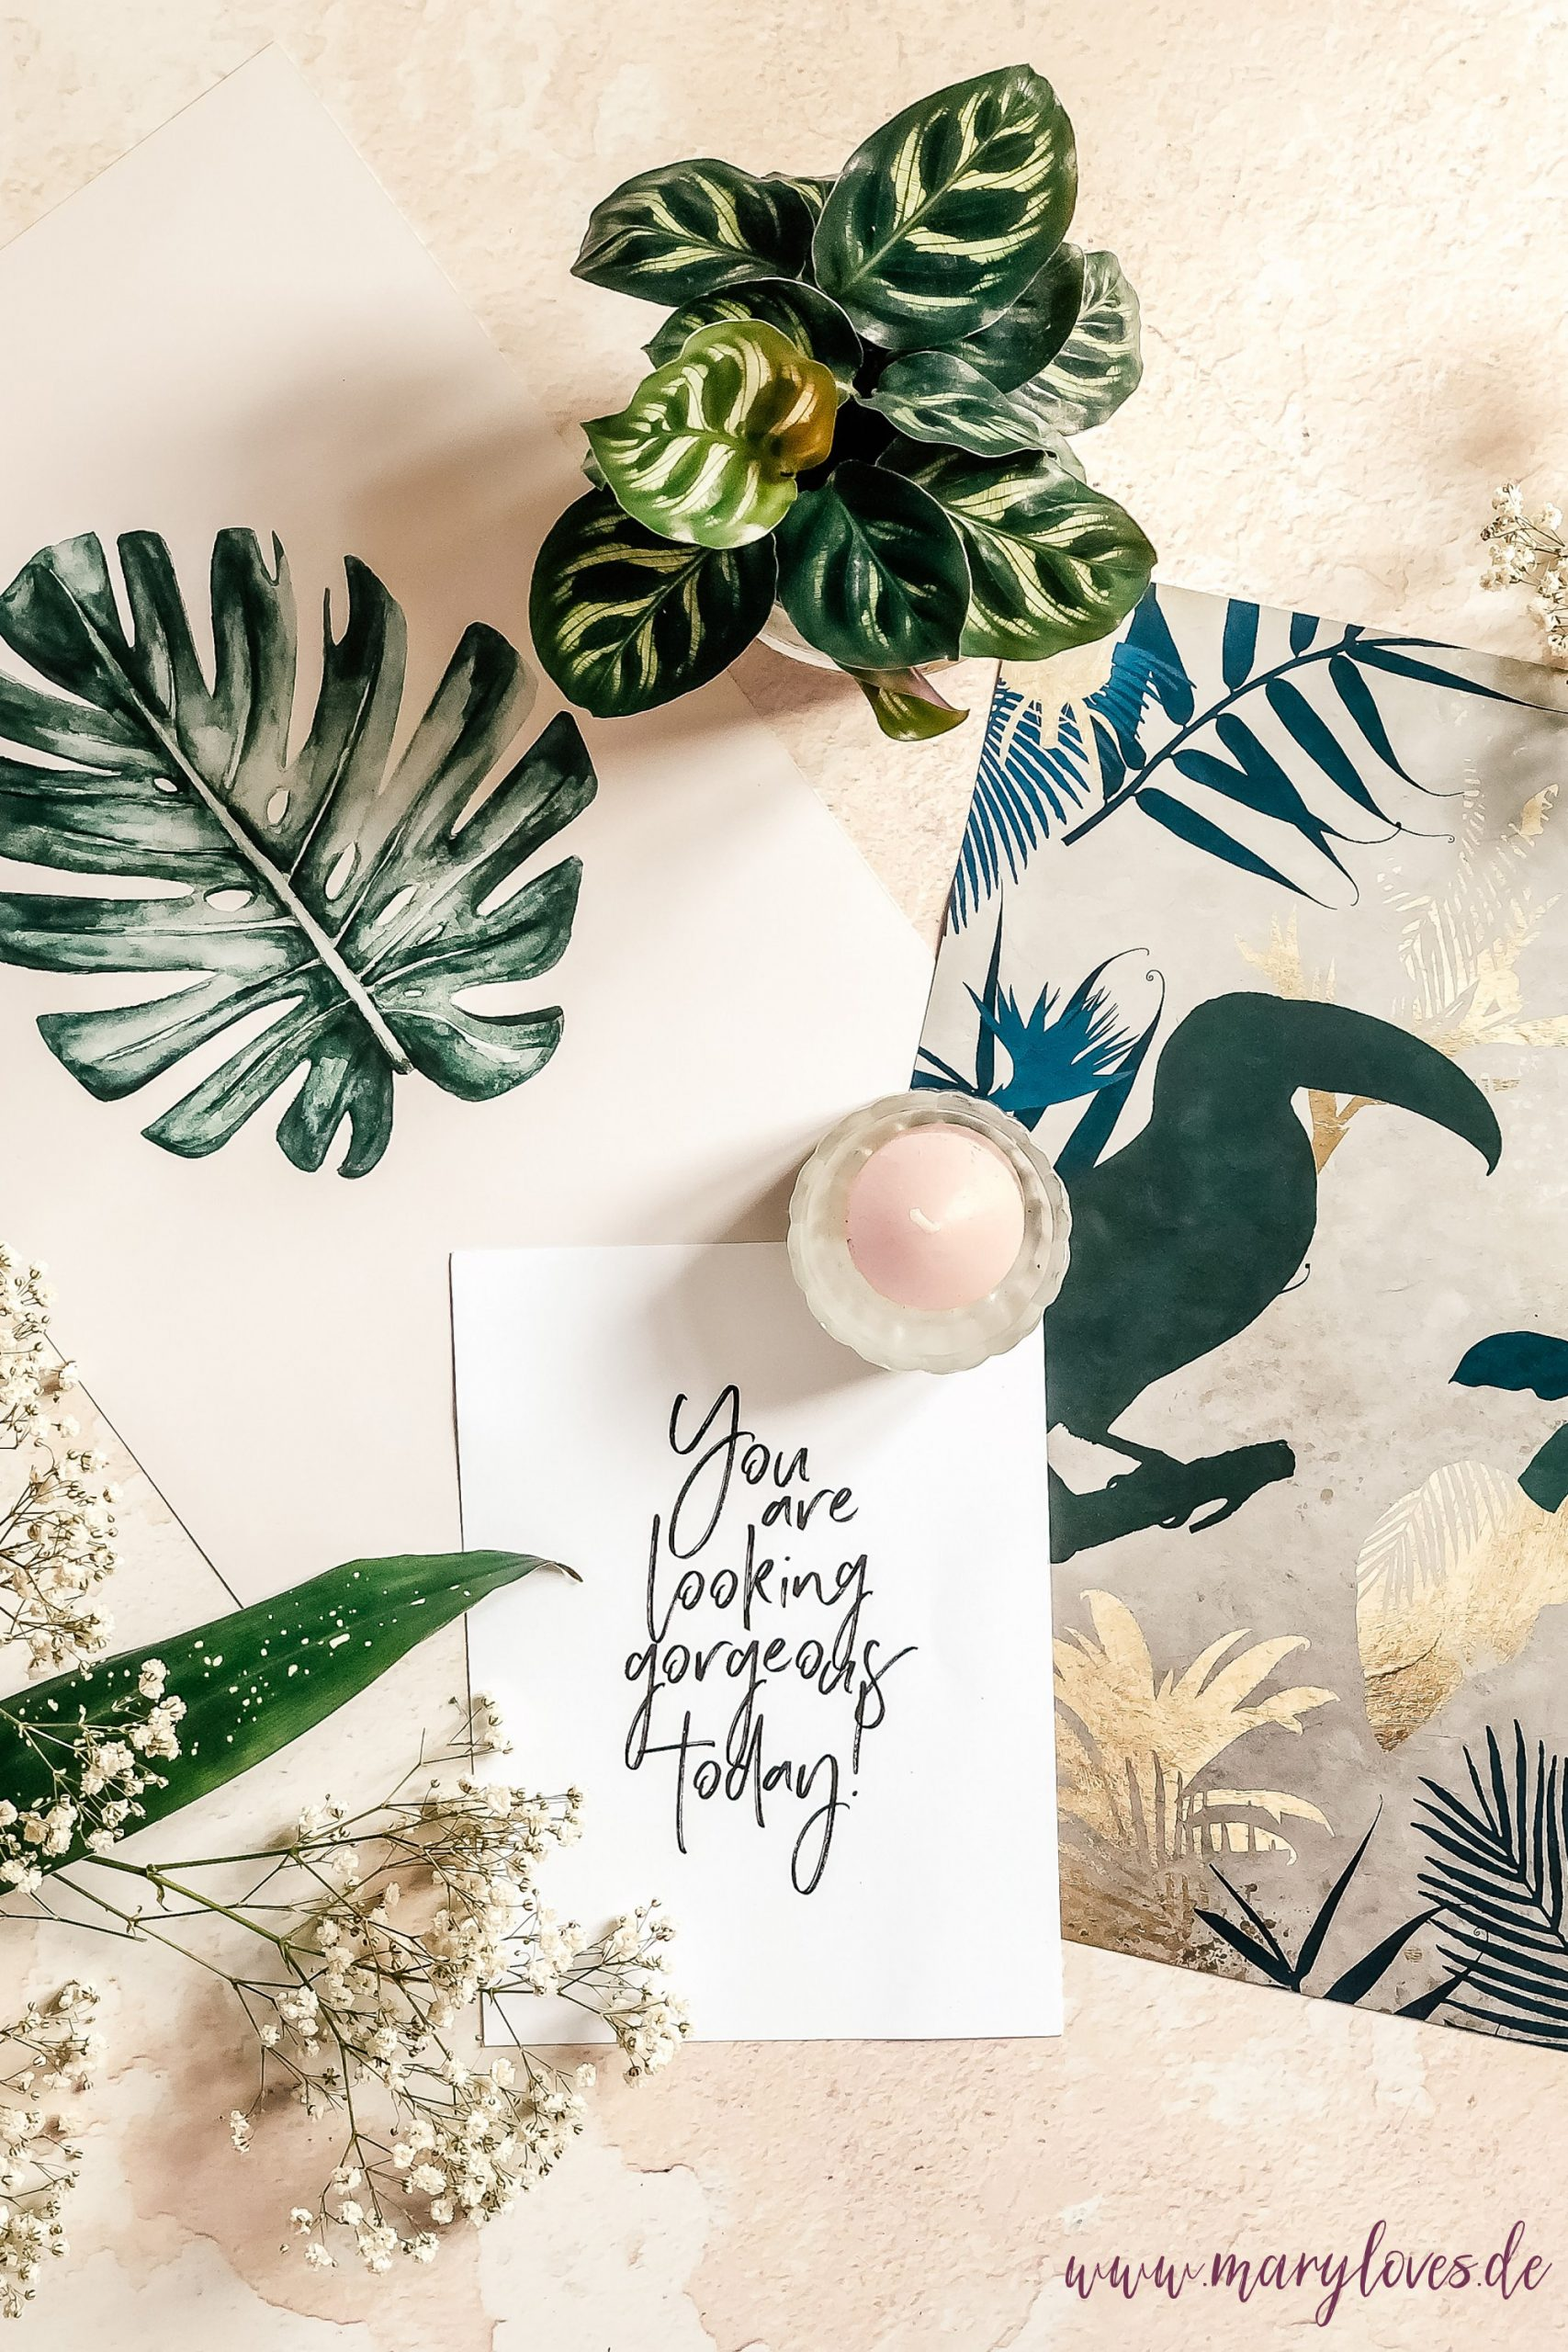 Bloggeburtstag: 6 Jahre Mary loves + Giveaway